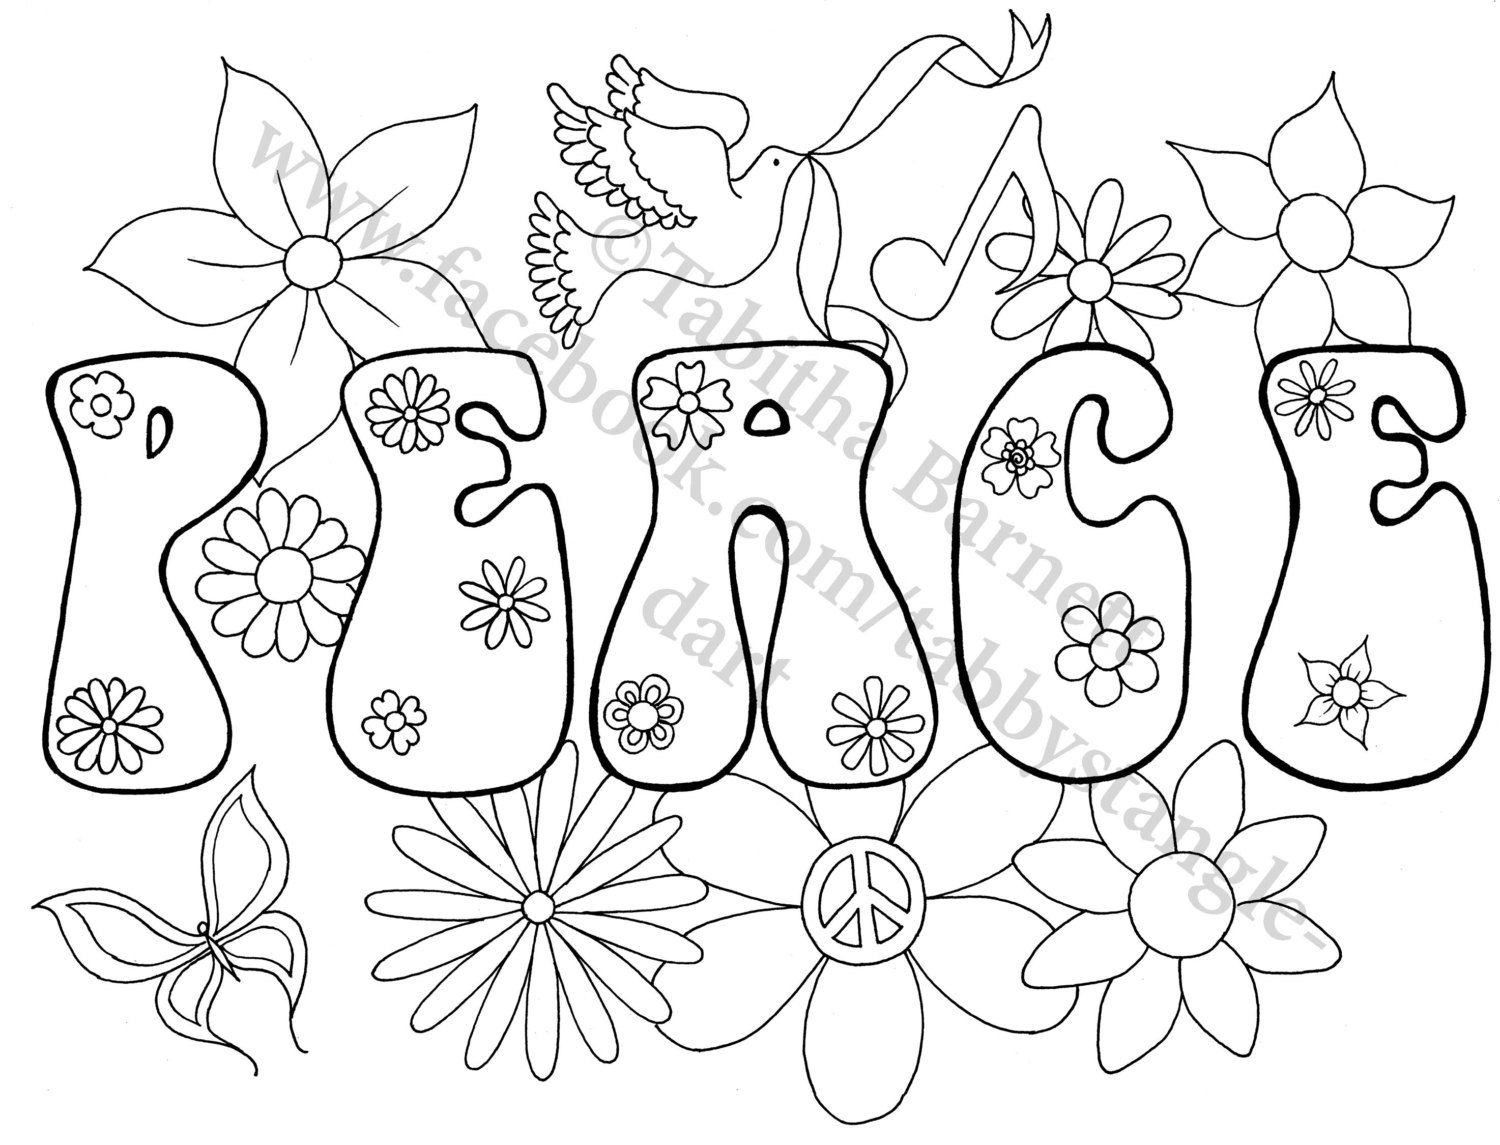 Peace On Earth Adult Coloring Page By Tabbystangledart On Etsy